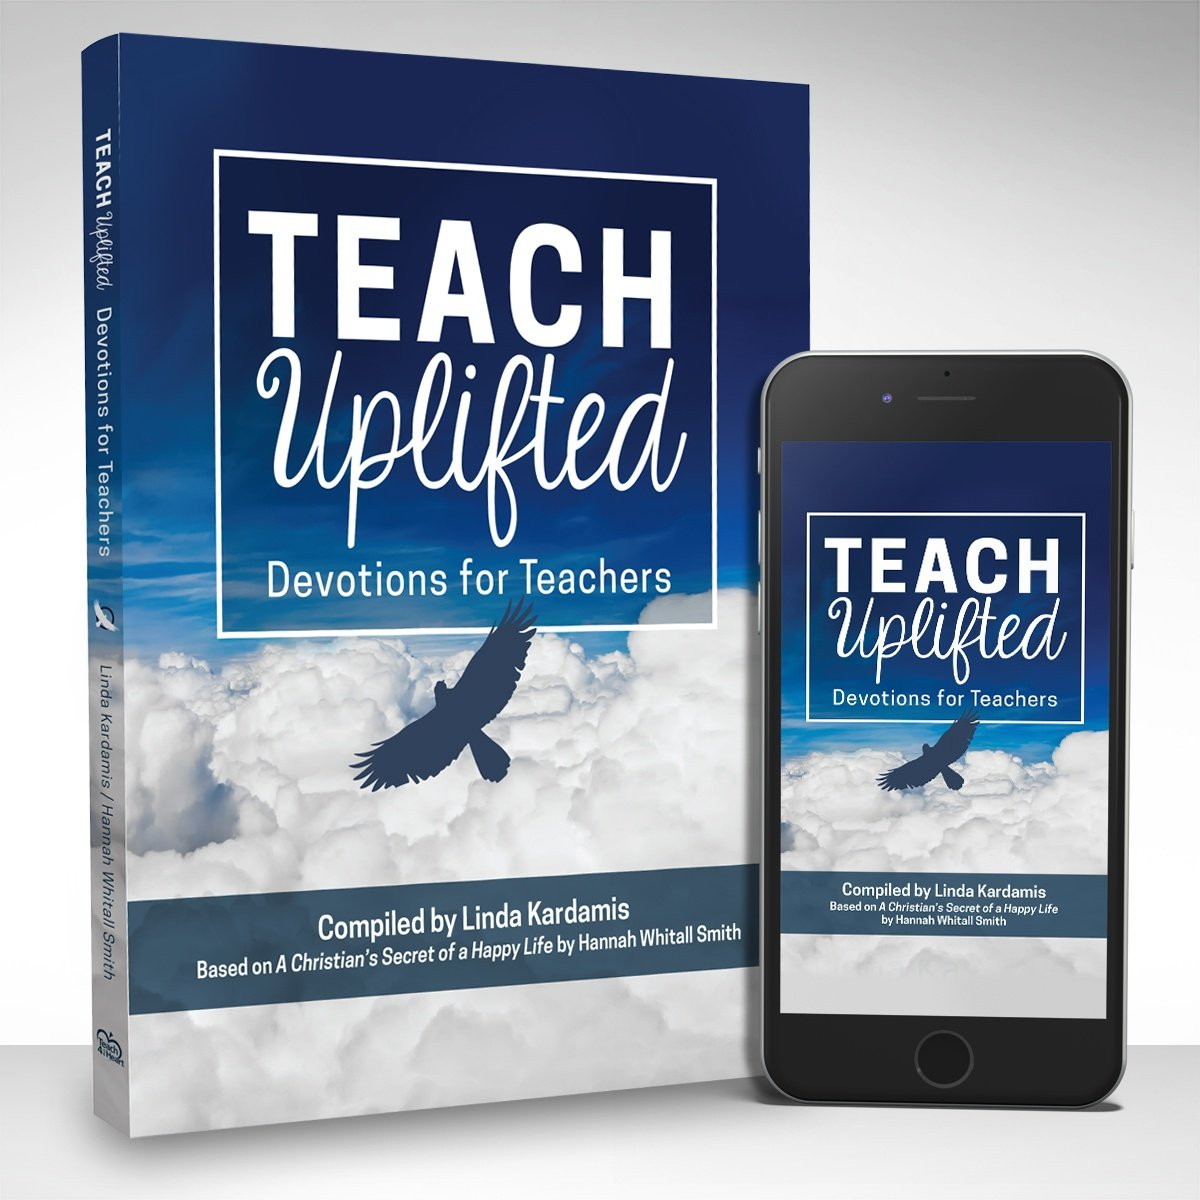 Teach Uplifted Book and iPhone